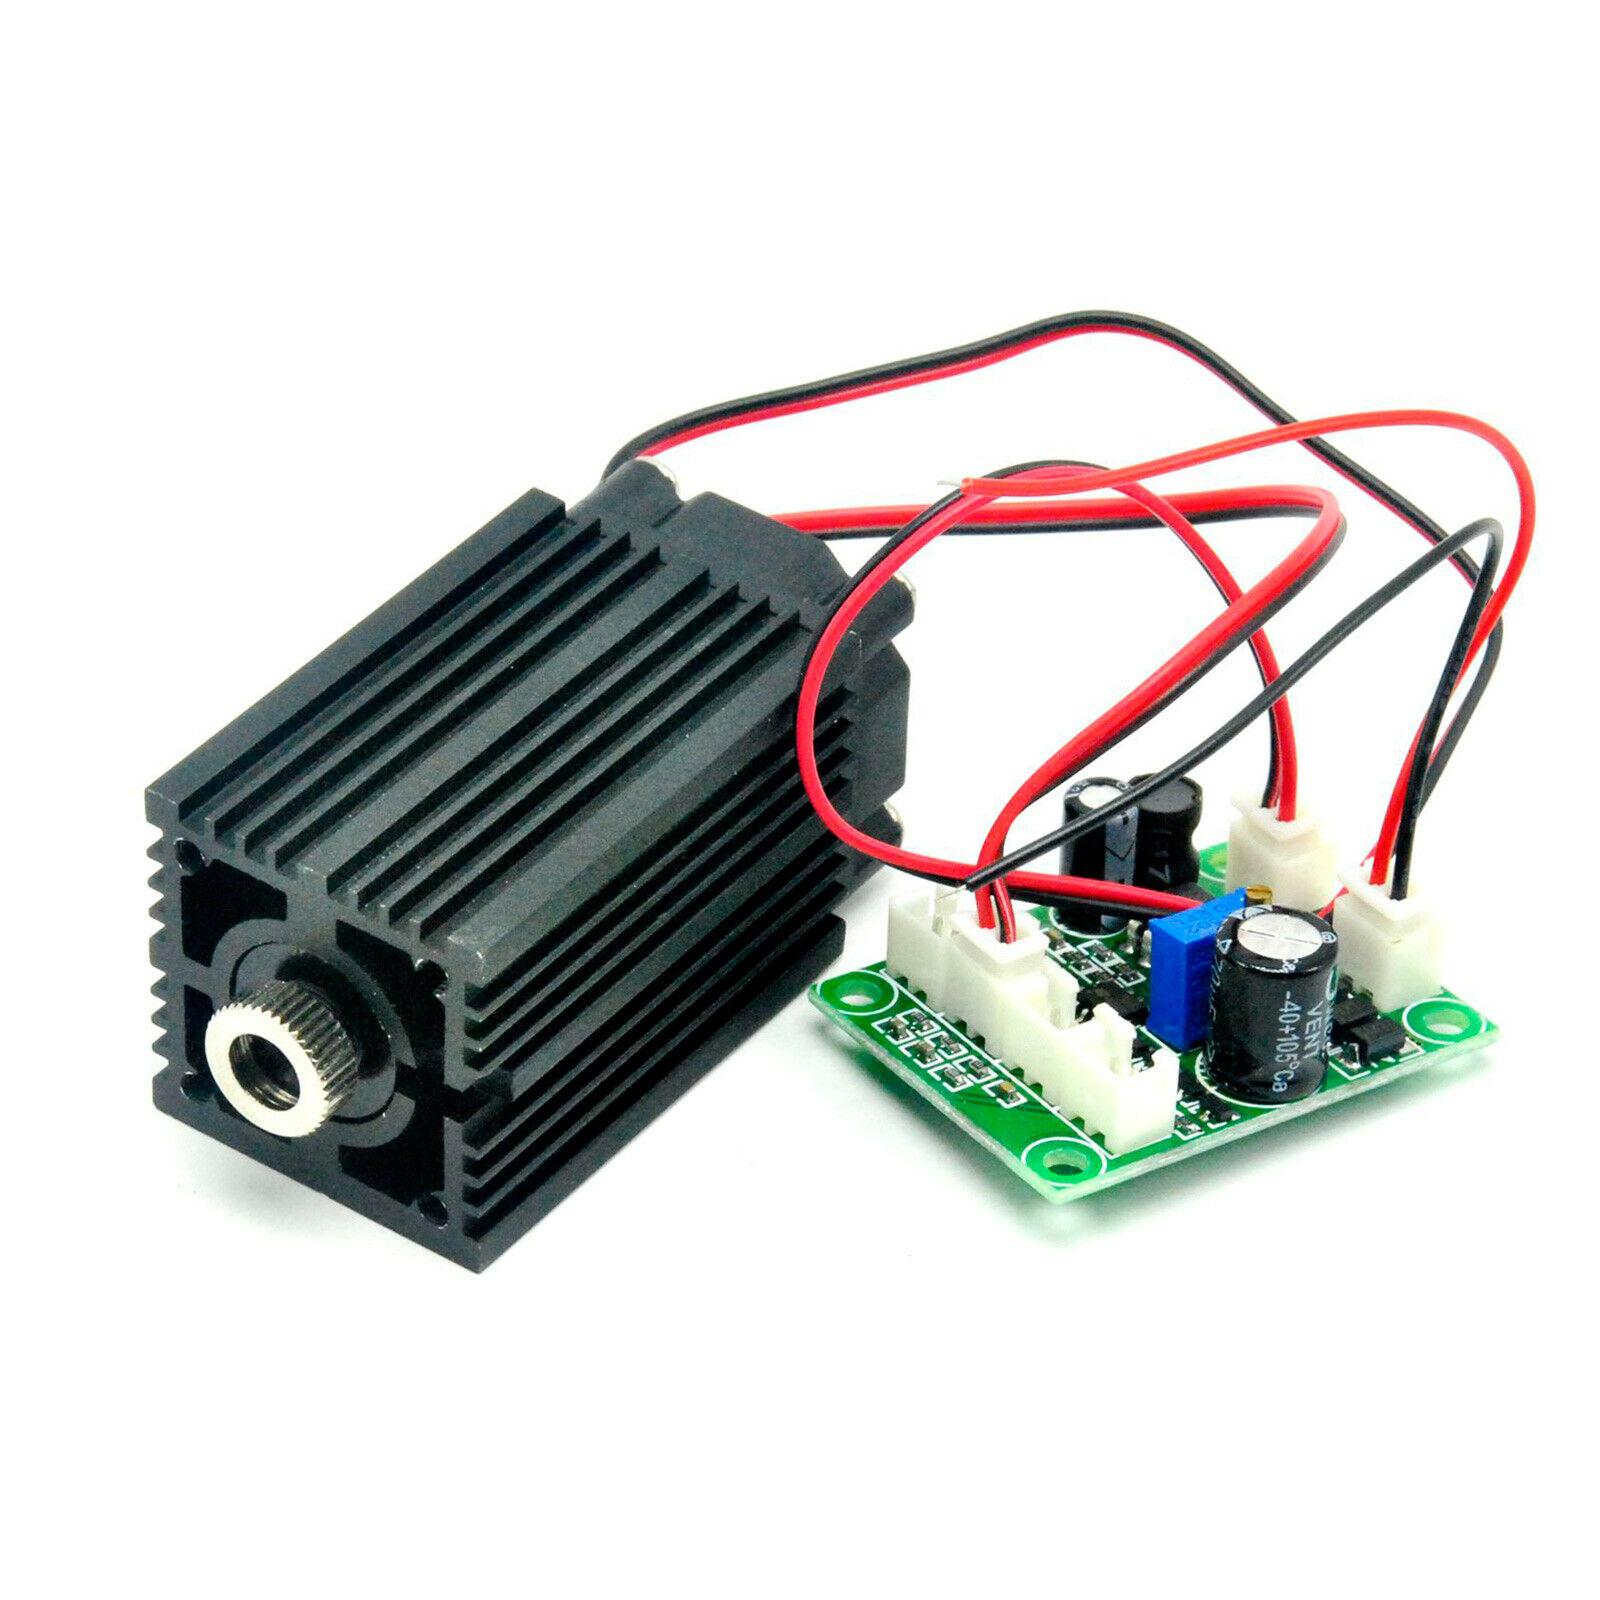 980nm 200mW IR Infraid laser Dot Line Cross Module w/ TTL+ Fan Cooling + Adapter